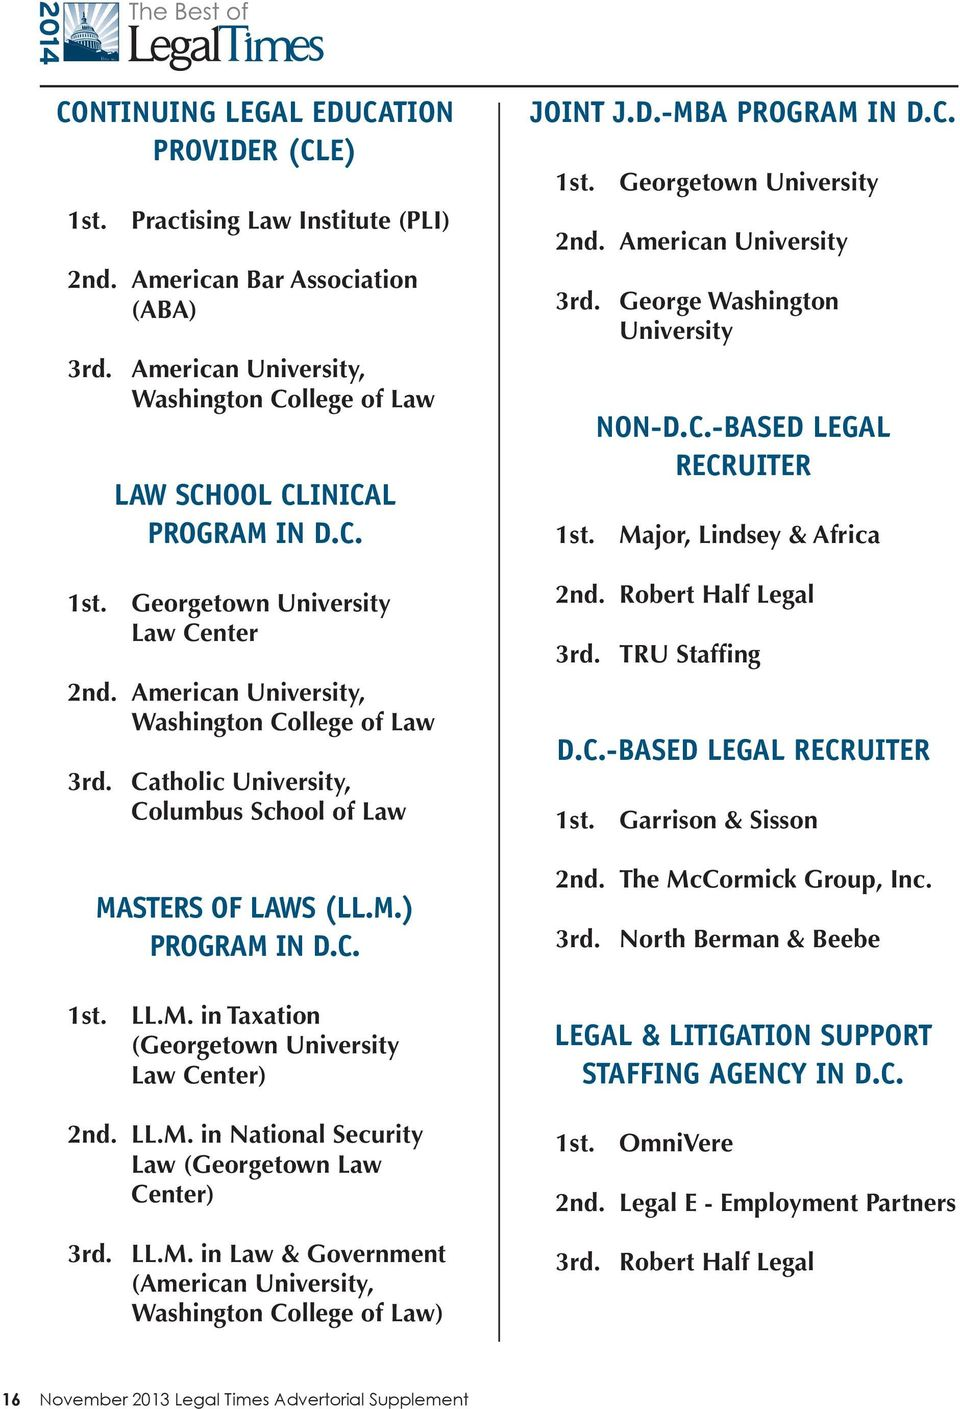 C. 1st. Georgetown University 2nd. American University 3rd. George Washington University NON-D.C.-BASED LEGAL RECRUITER 1st. Major, Lindsey & Africa 2nd. Robert Half Legal 3rd. TRU Staffing D.C.-BASED LEGAL RECRUITER 1st. Garrison & Sisson 2nd.